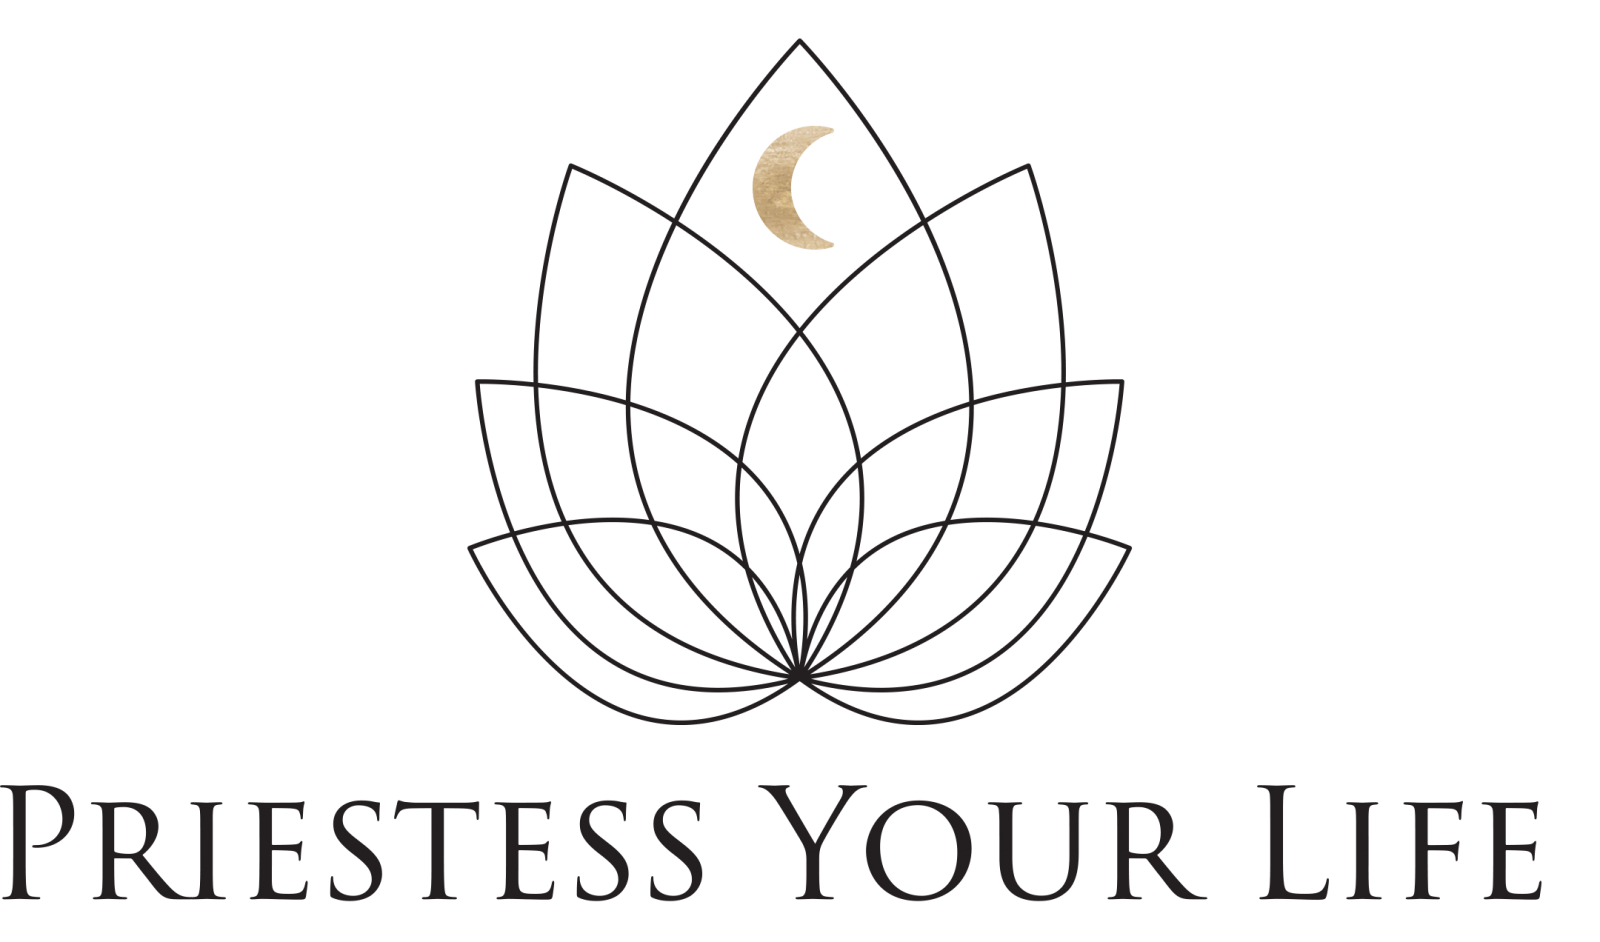 Astrology Reading ⋆ Natal Chart, Chiron, Lilith ⋆ Priestess Your Life